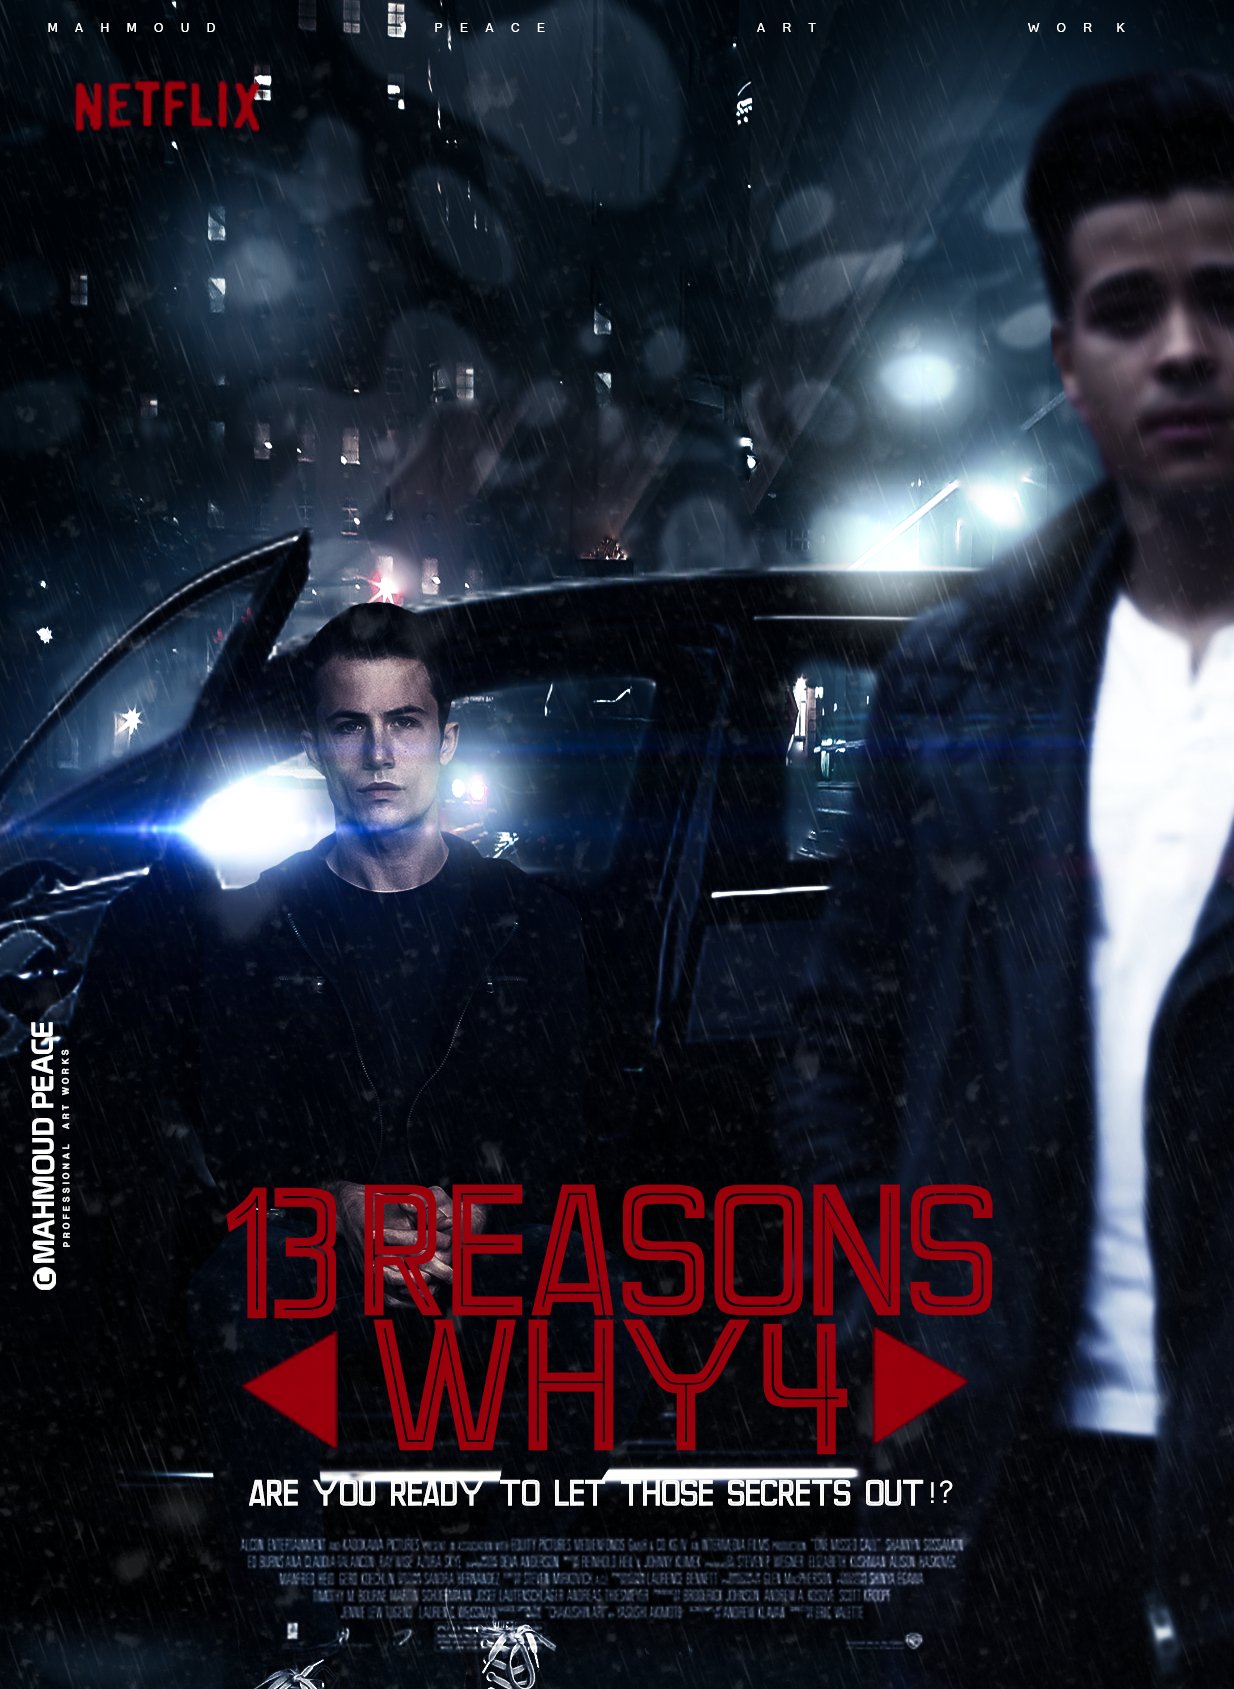 13 Reasons Why 4